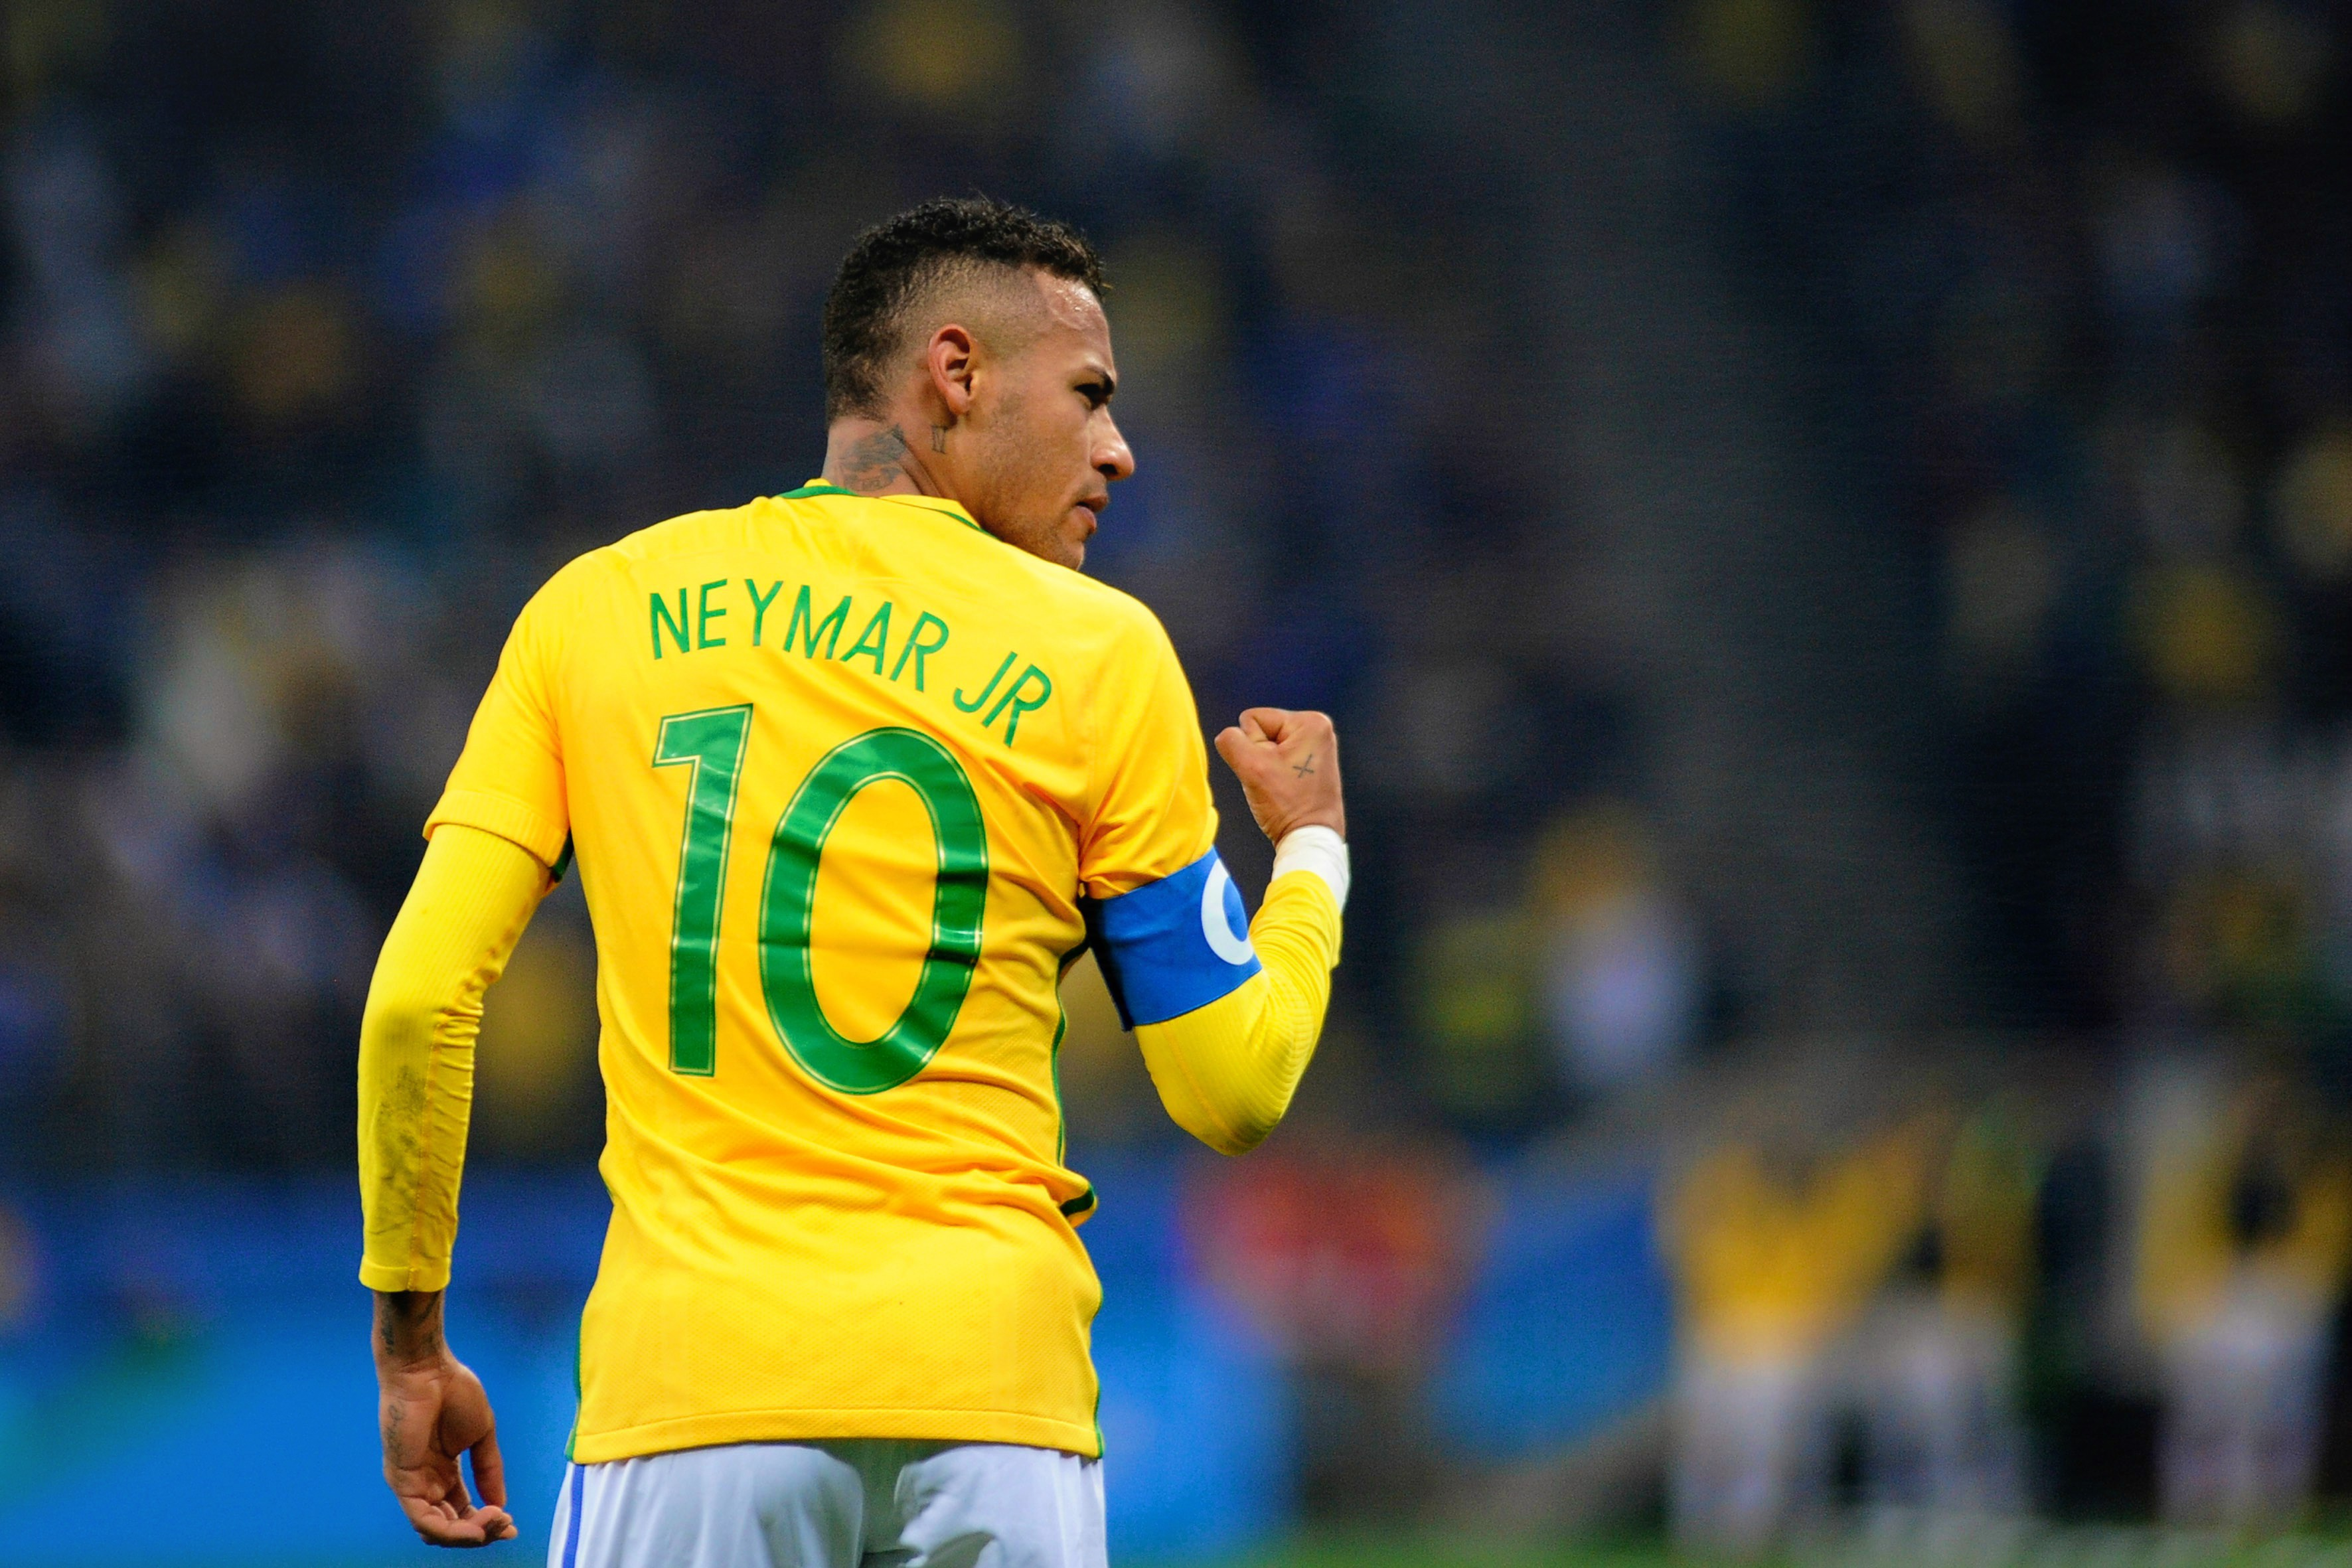 Neymar Sets Eyes on FIFA World Cup Title